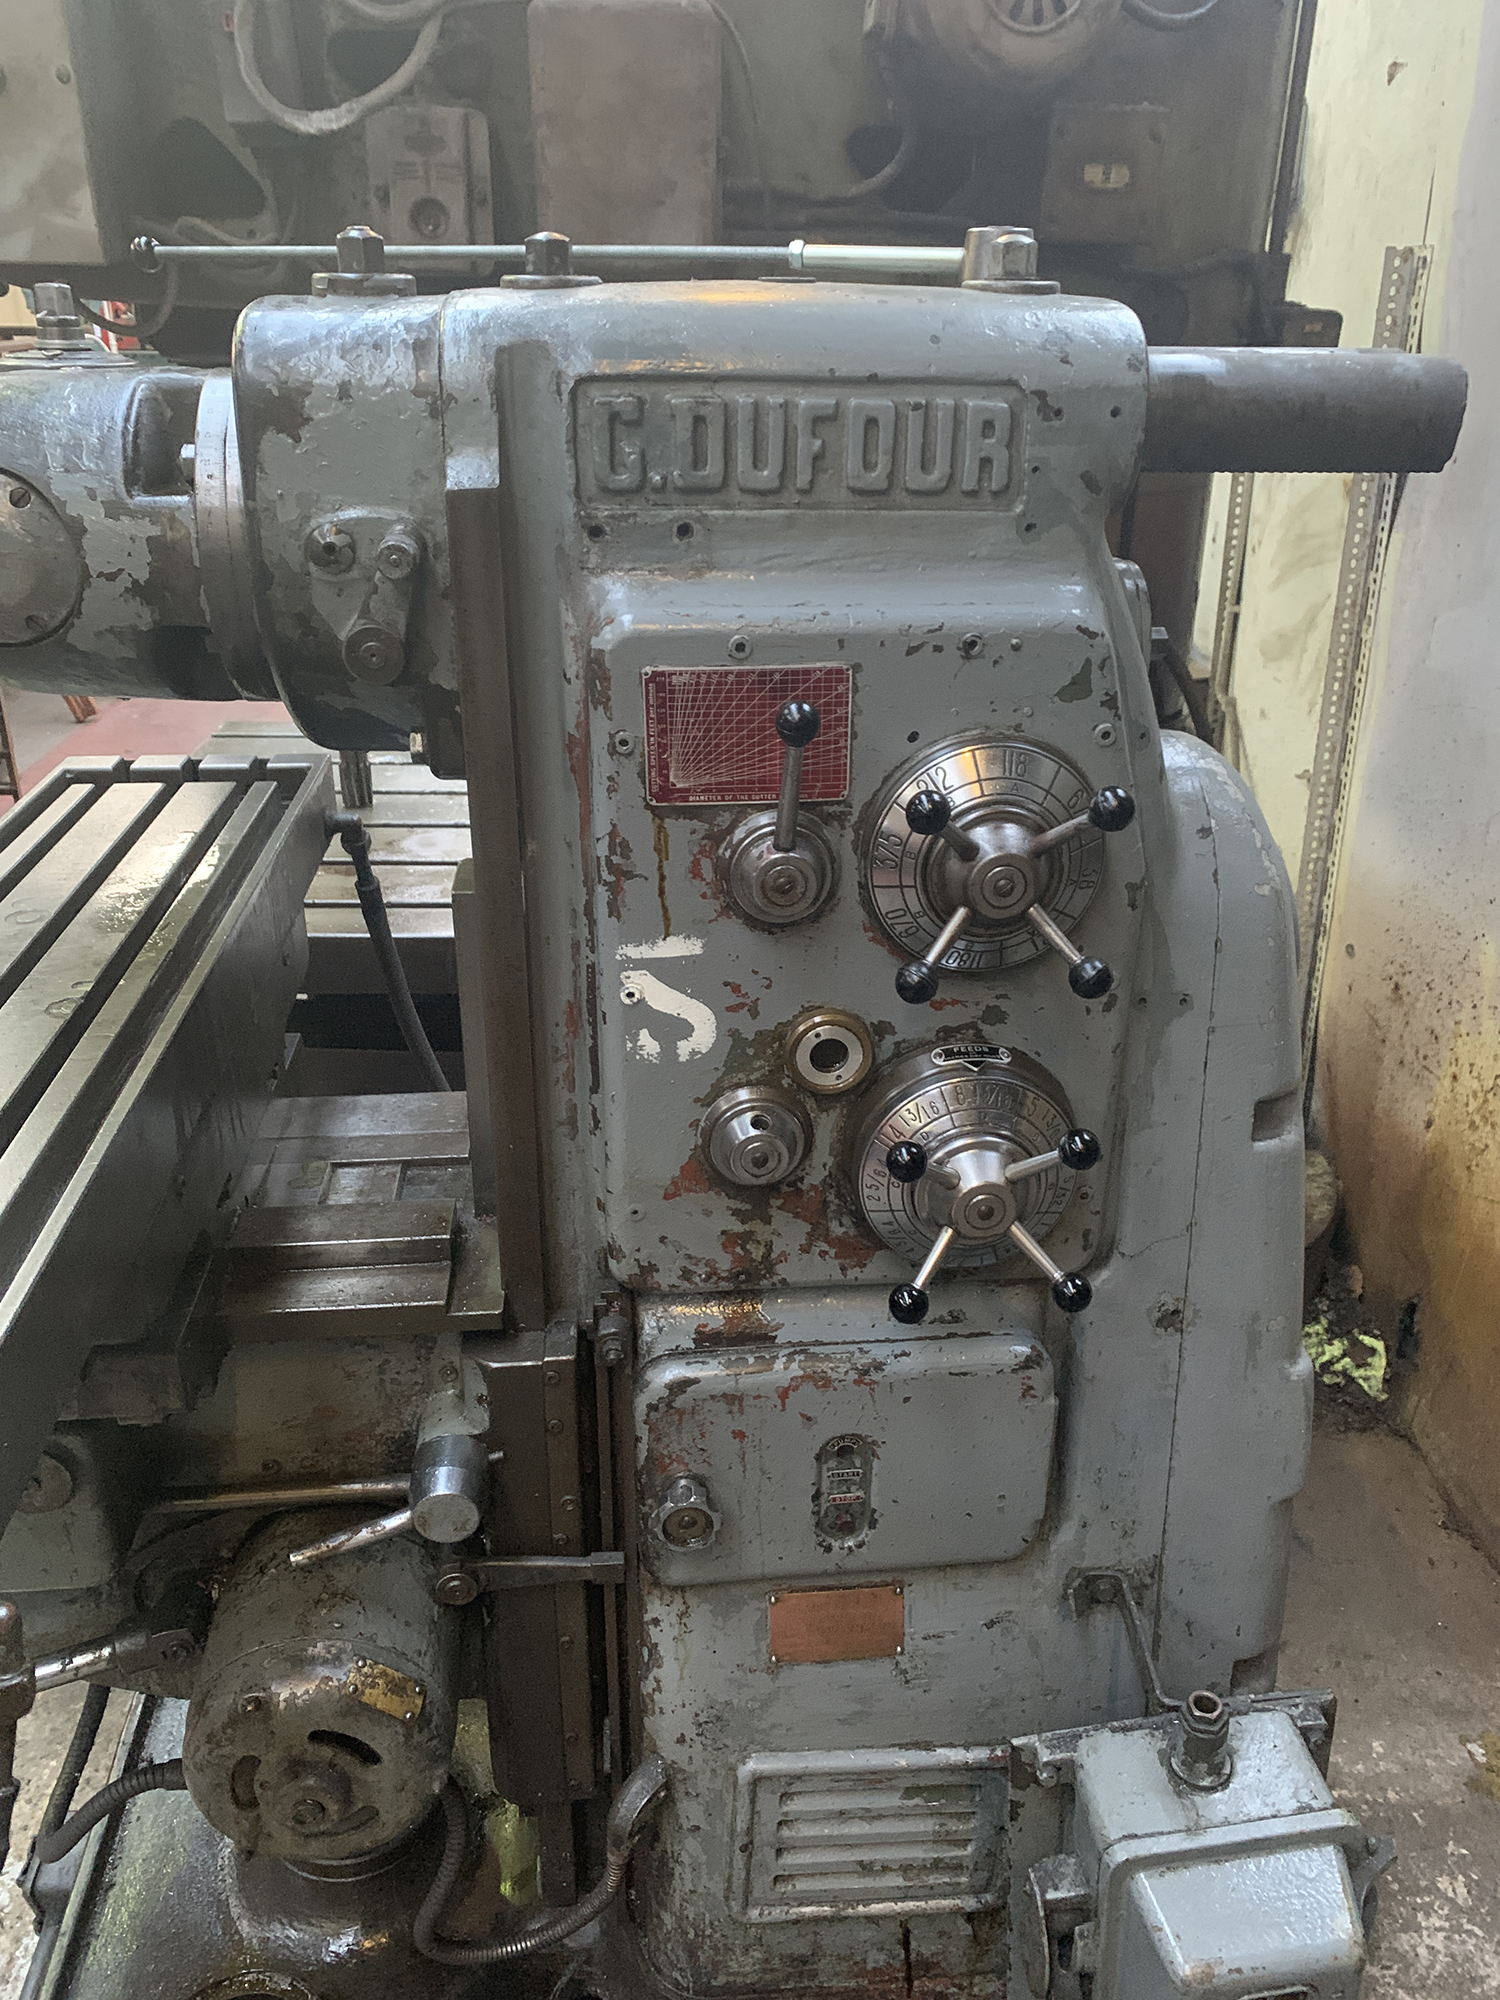 Dufour Universal Milling Machine with Double Swivel Head. Table Size 1100 x 250mm. - Image 3 of 4